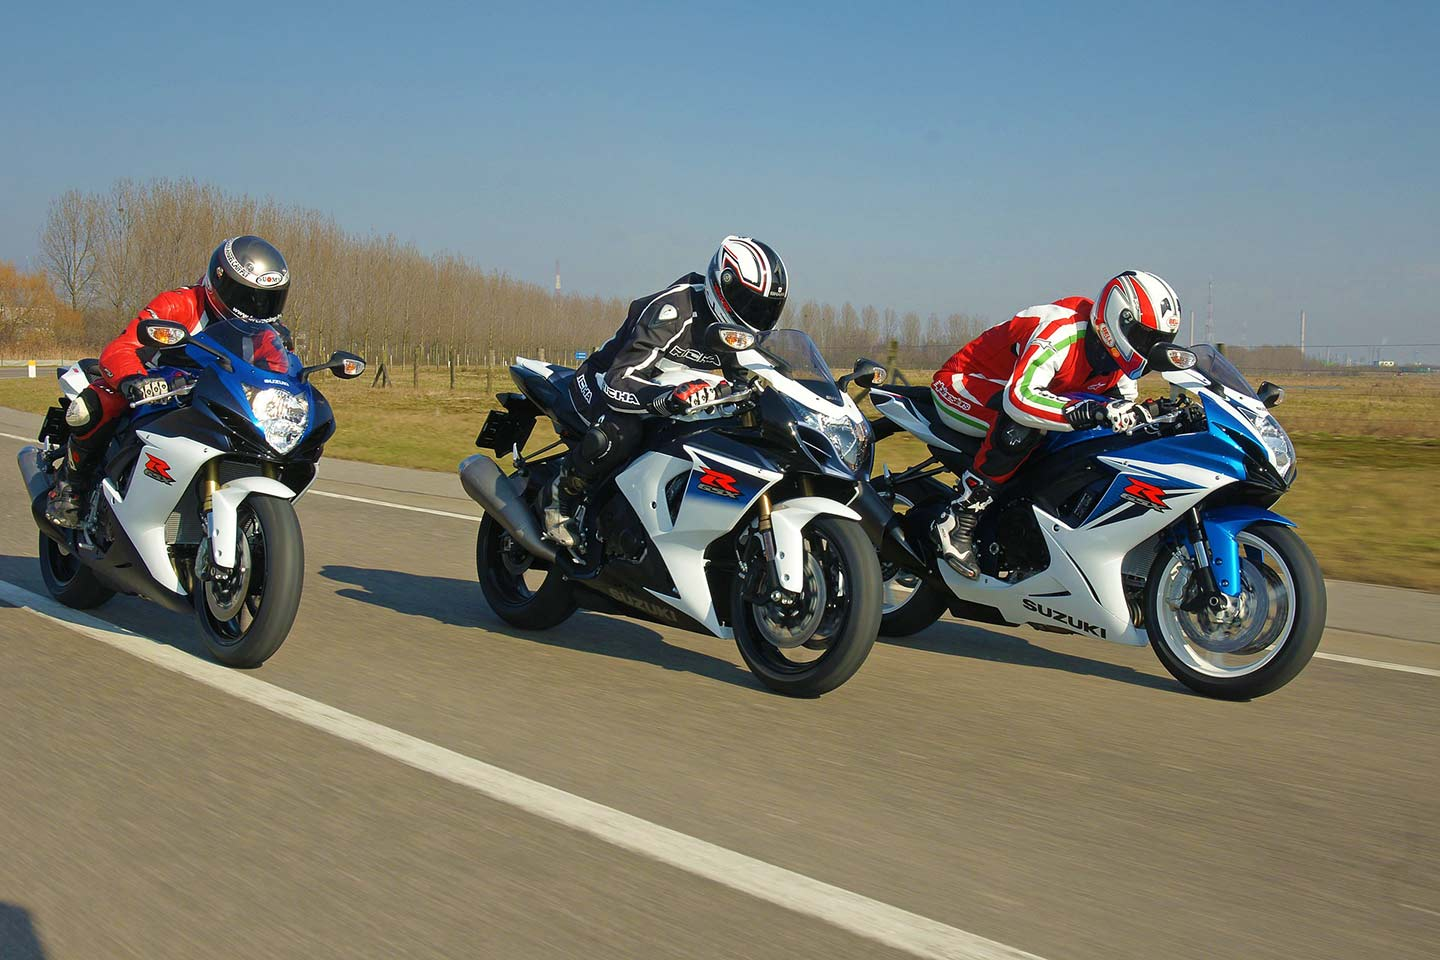 How to Ride a Motorbike in a Group